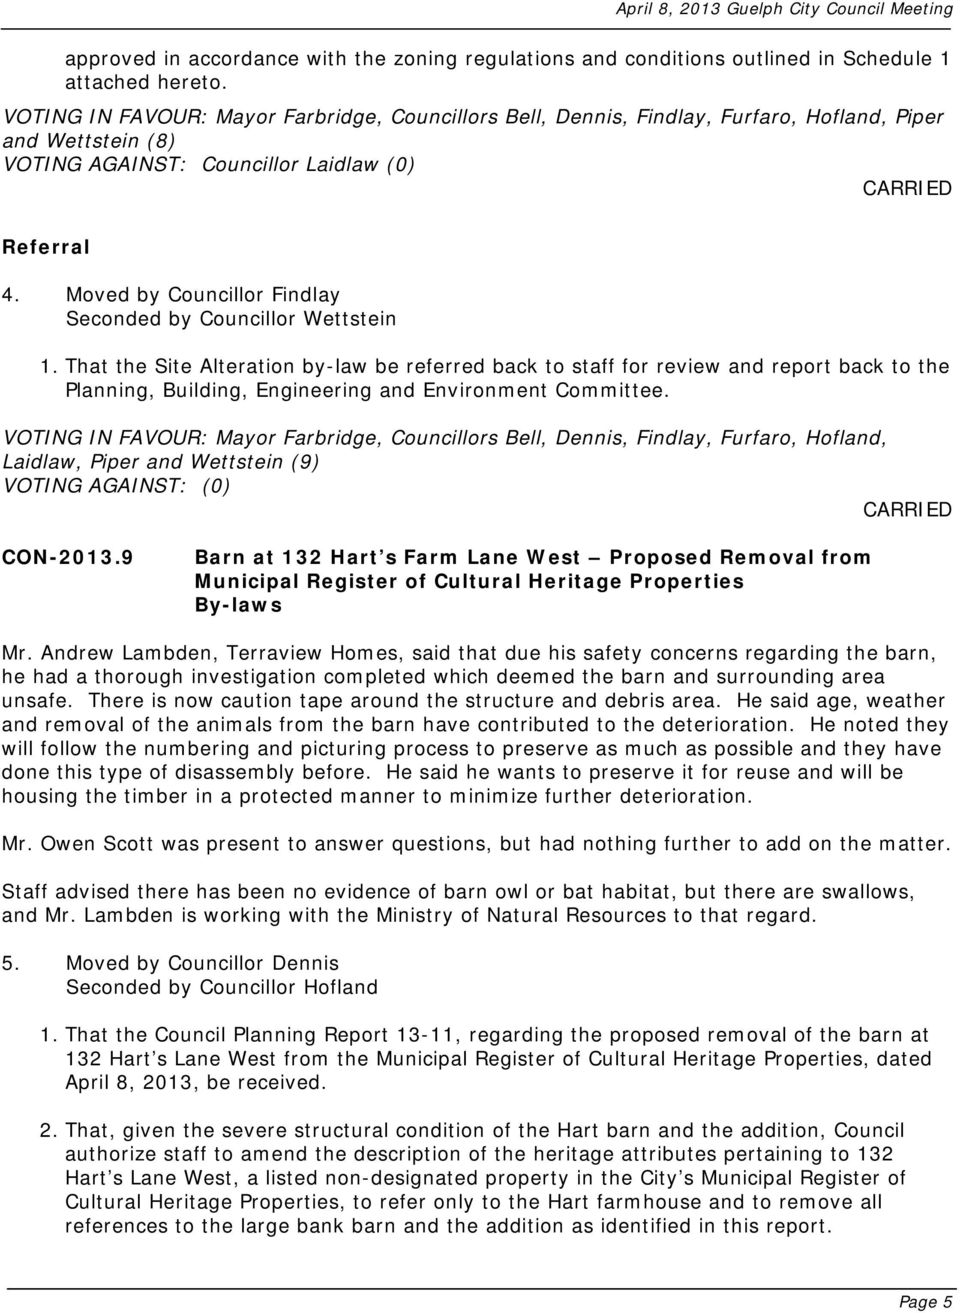 That the Site Alteration by-law be referred back to staff for review and report back to the Planning, Building, Engineering and Environment Committee. CON-2013.